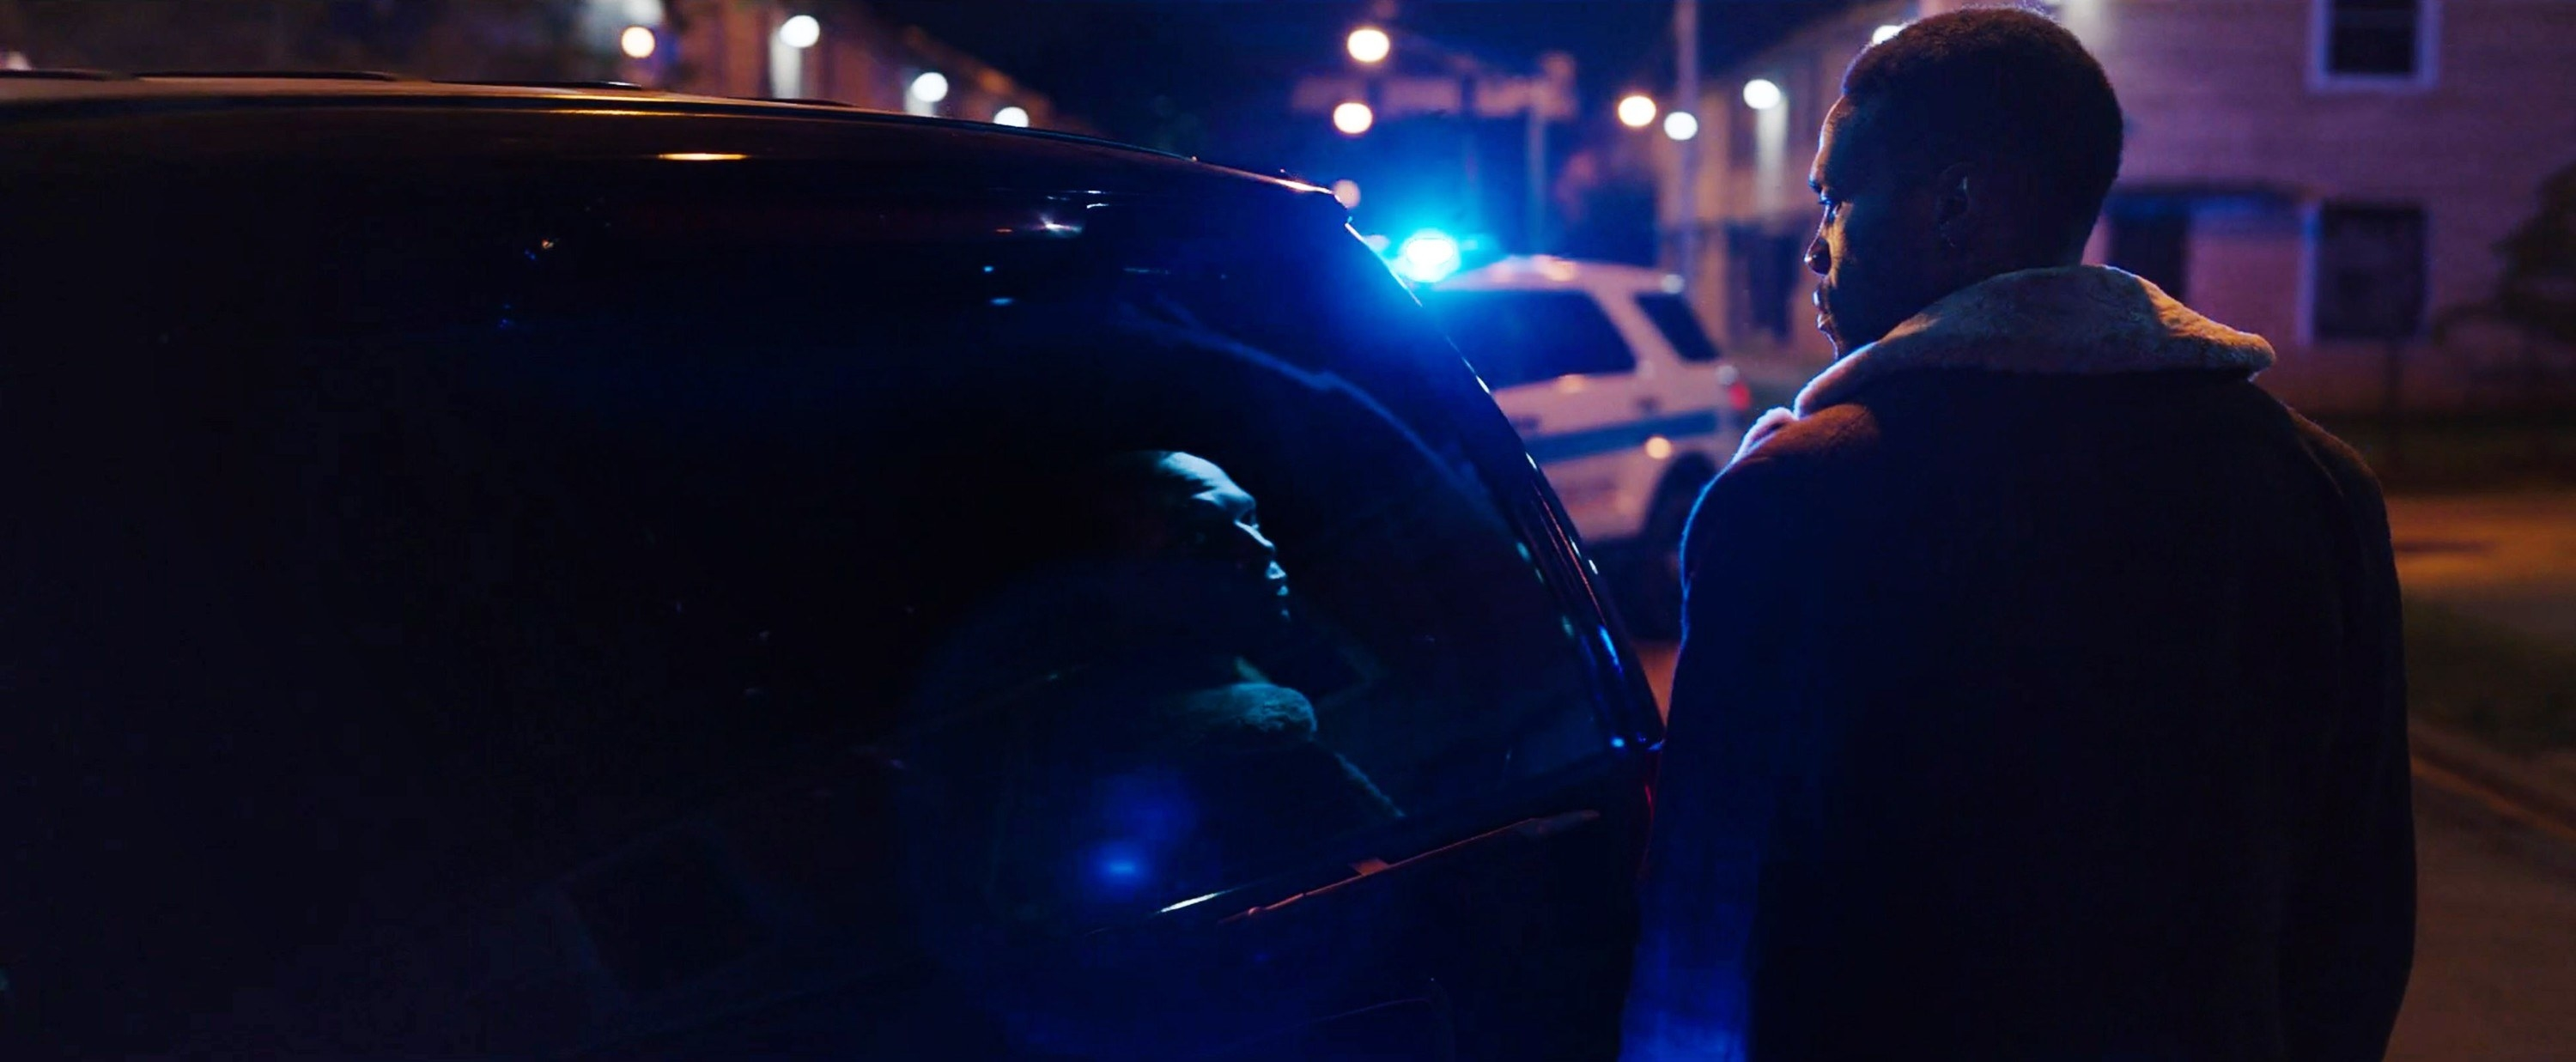 Candyman approaching a police vehicle at night